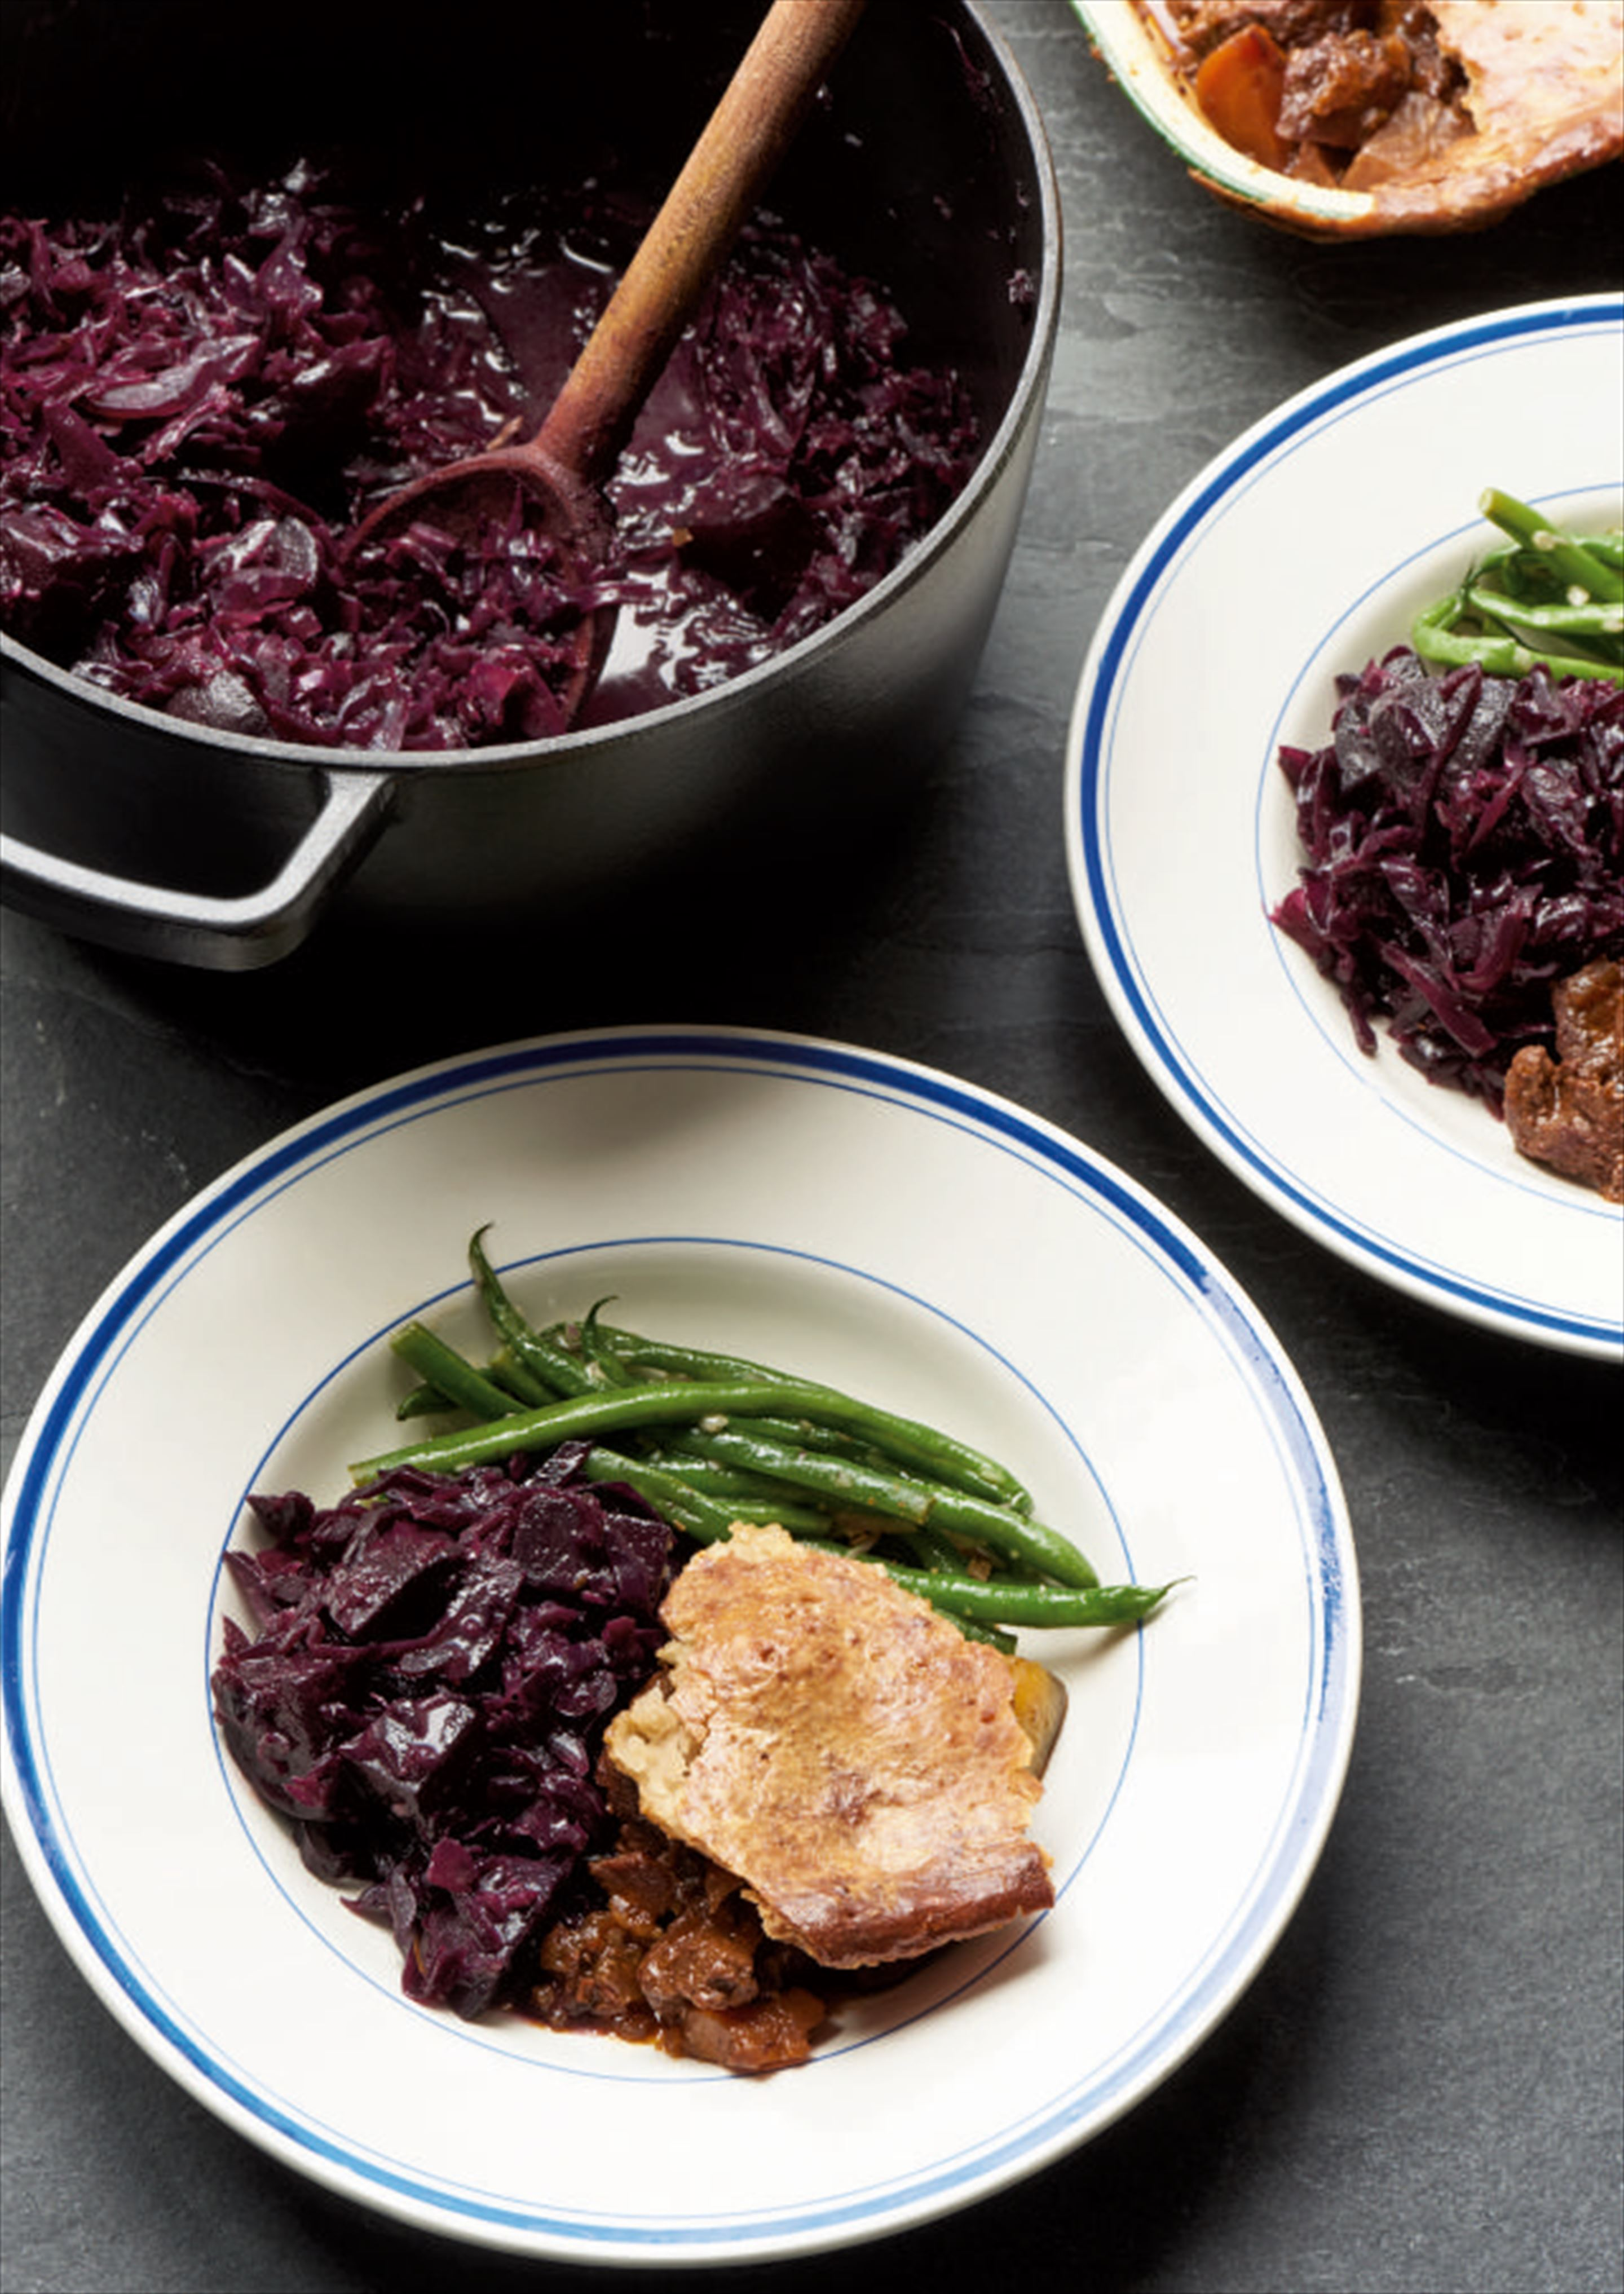 Braised red cabbage and beetroot